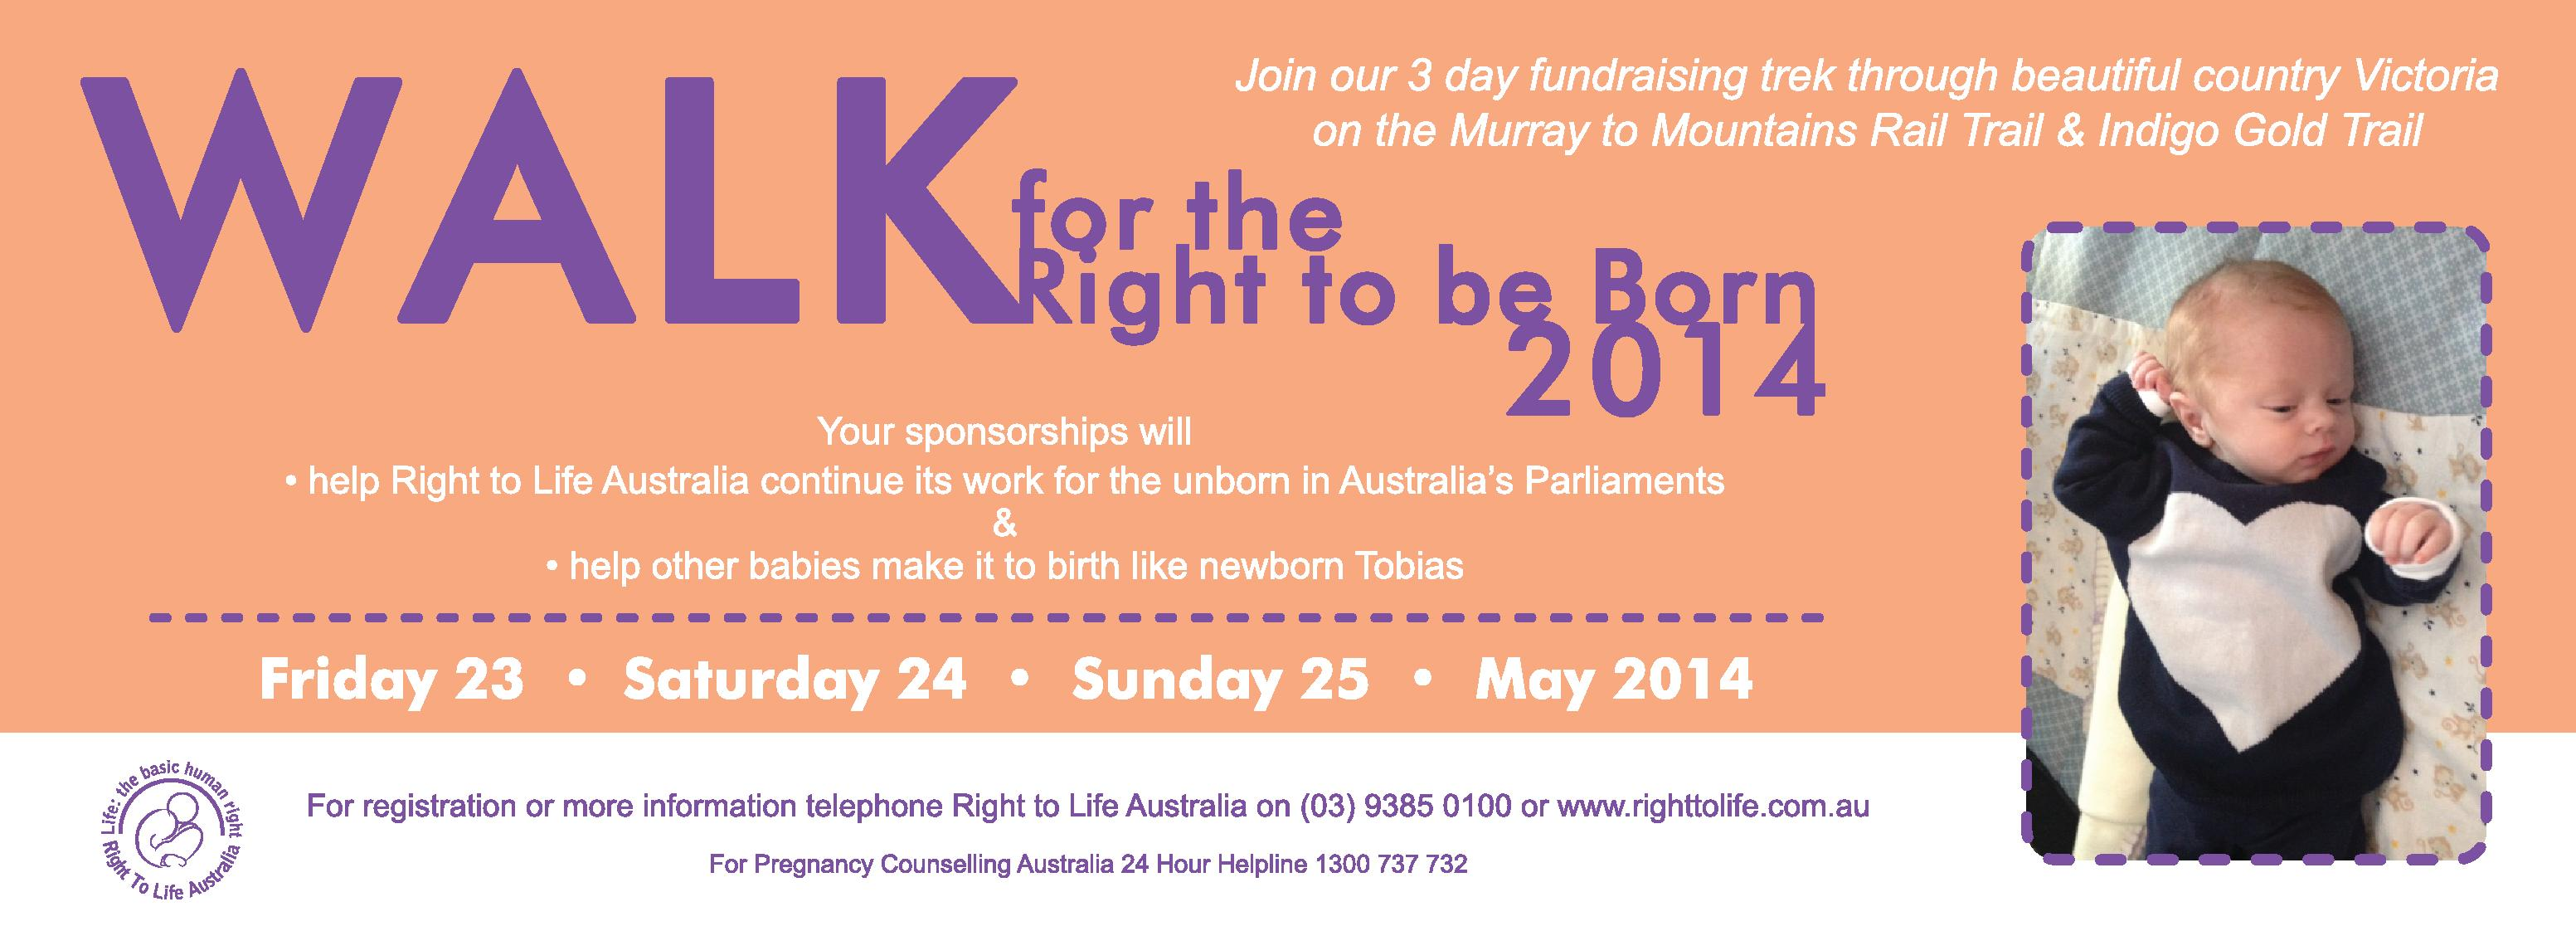 Walk for the Right to be Born 2014